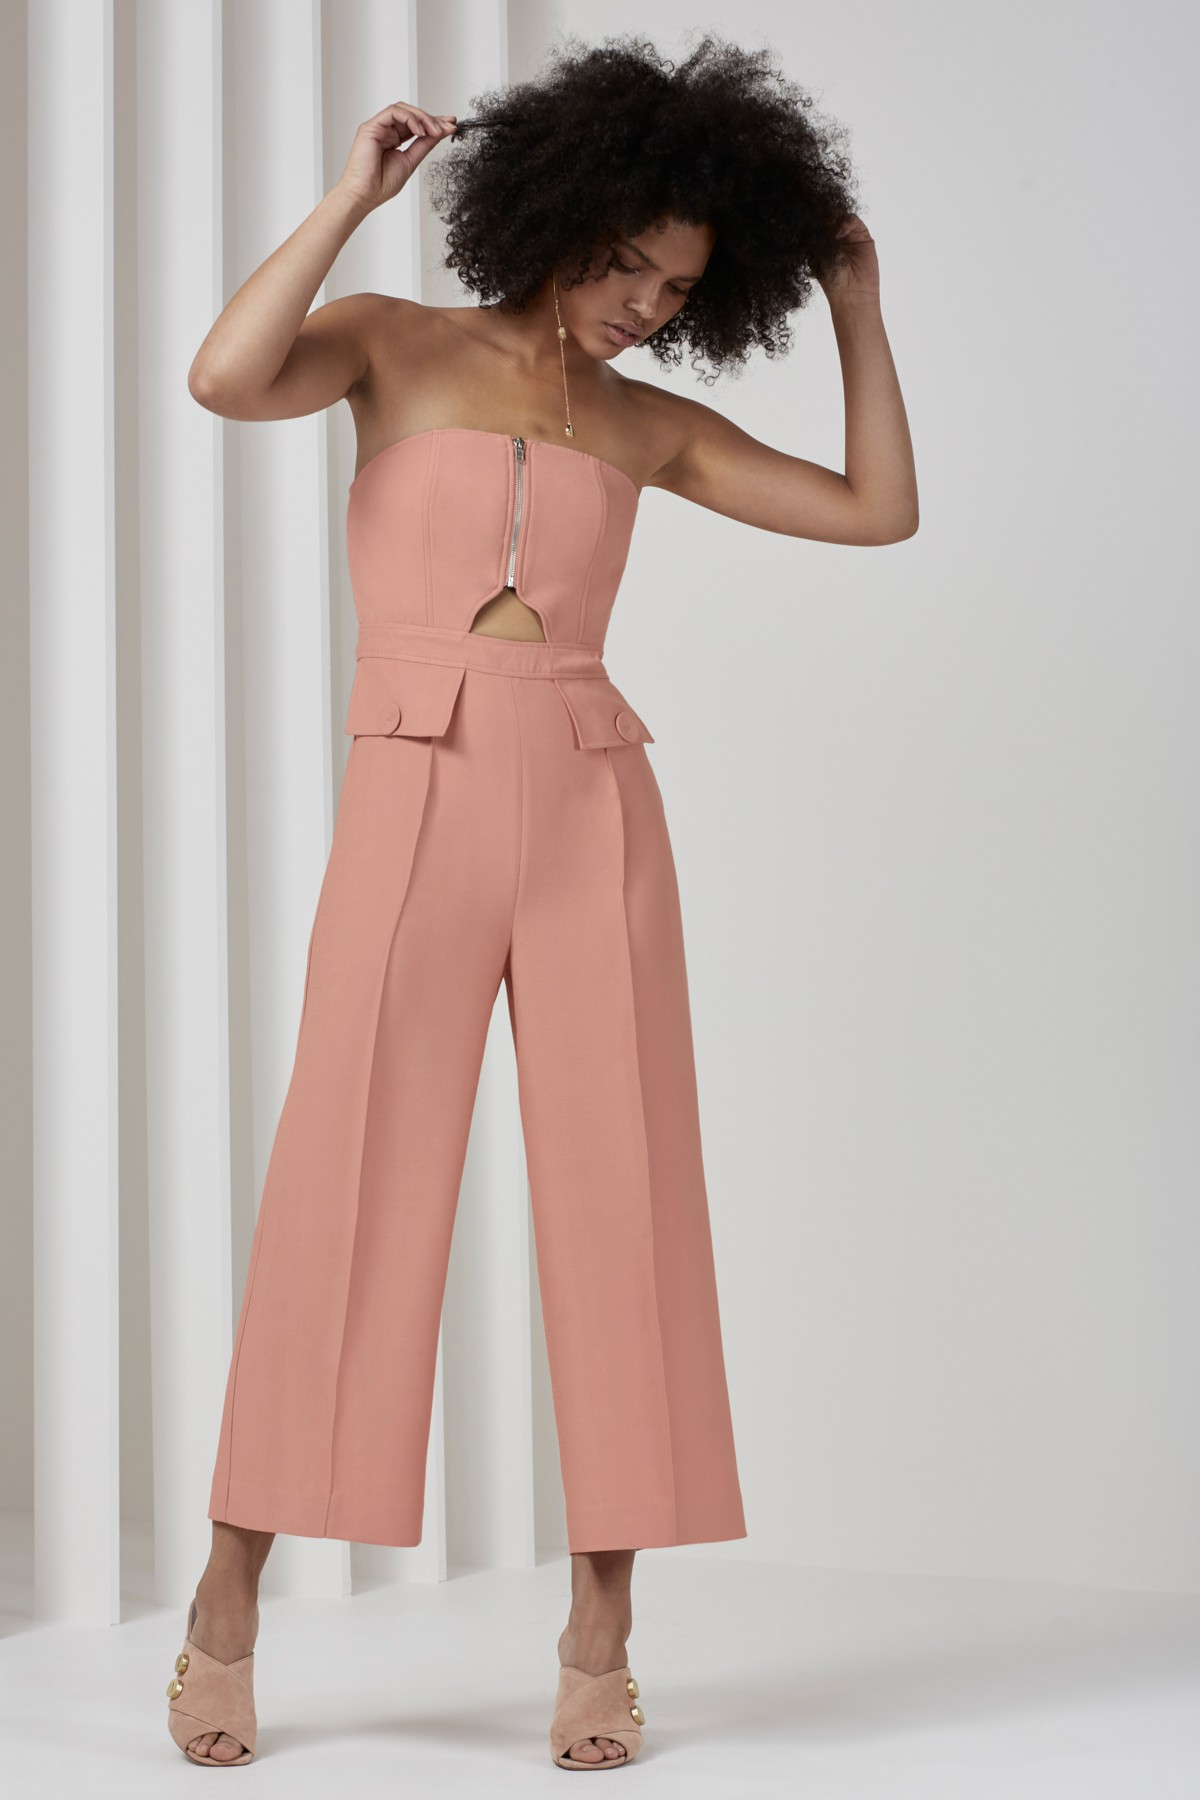 Shop C/MEO No Limit Jumpsuit.